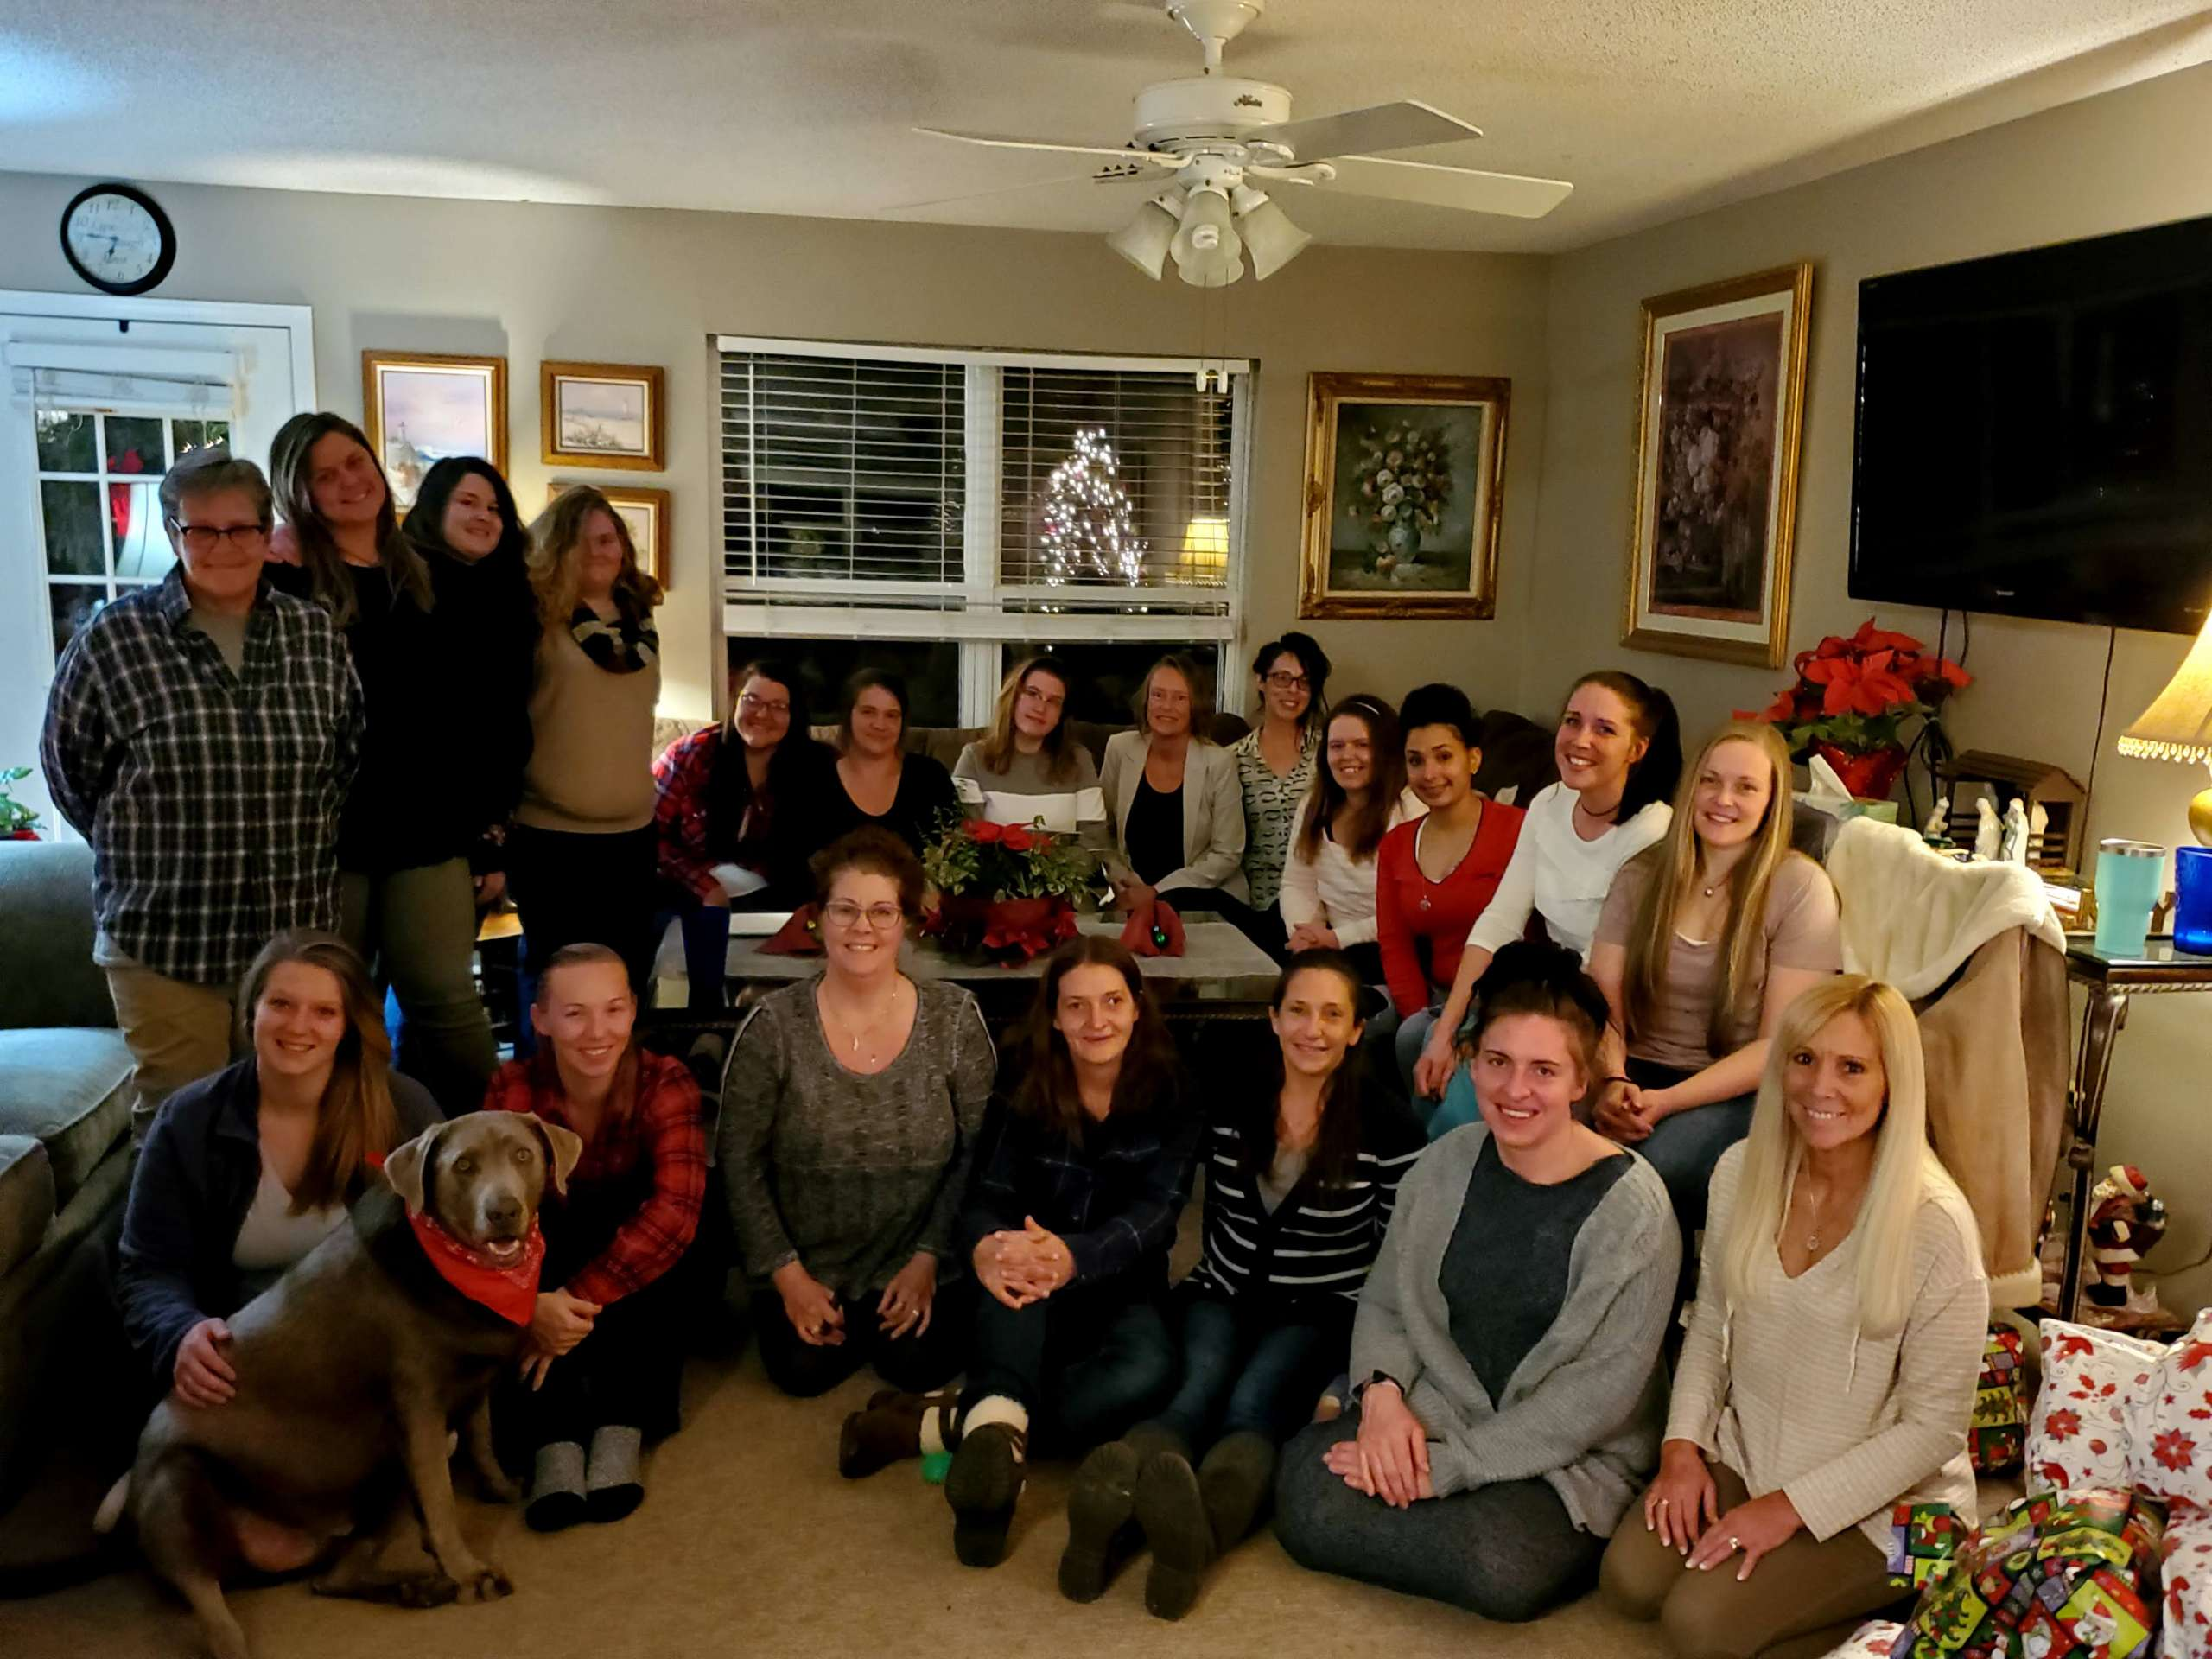 womens Christmas 2020 recovery ventures asheville nc